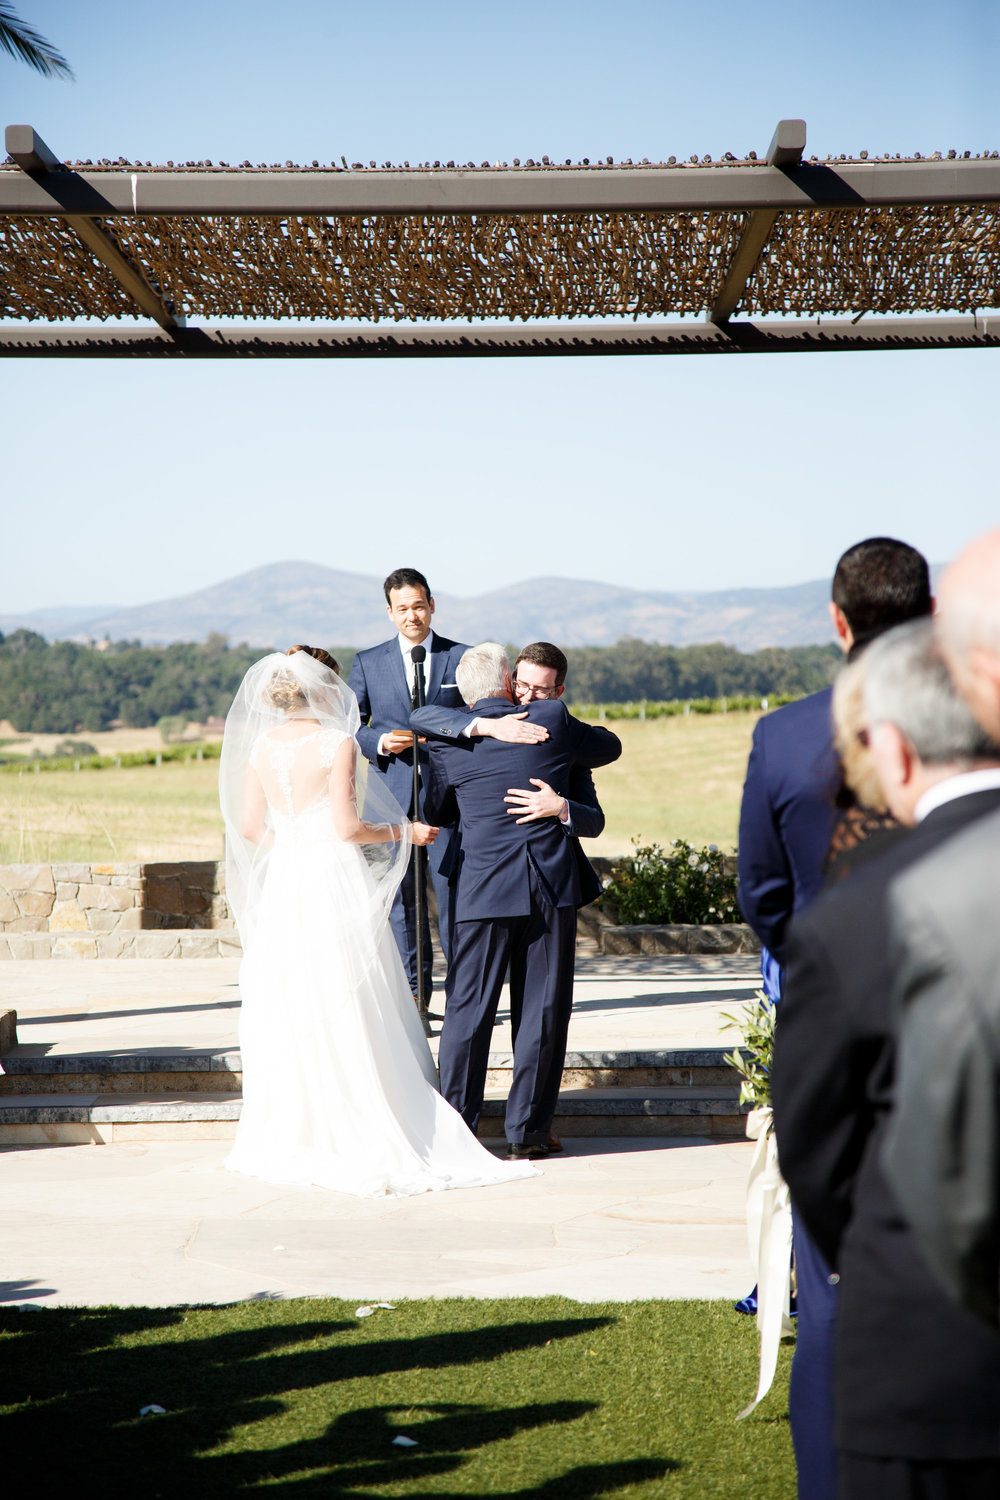 CarnerosWedding2018-320.jpg